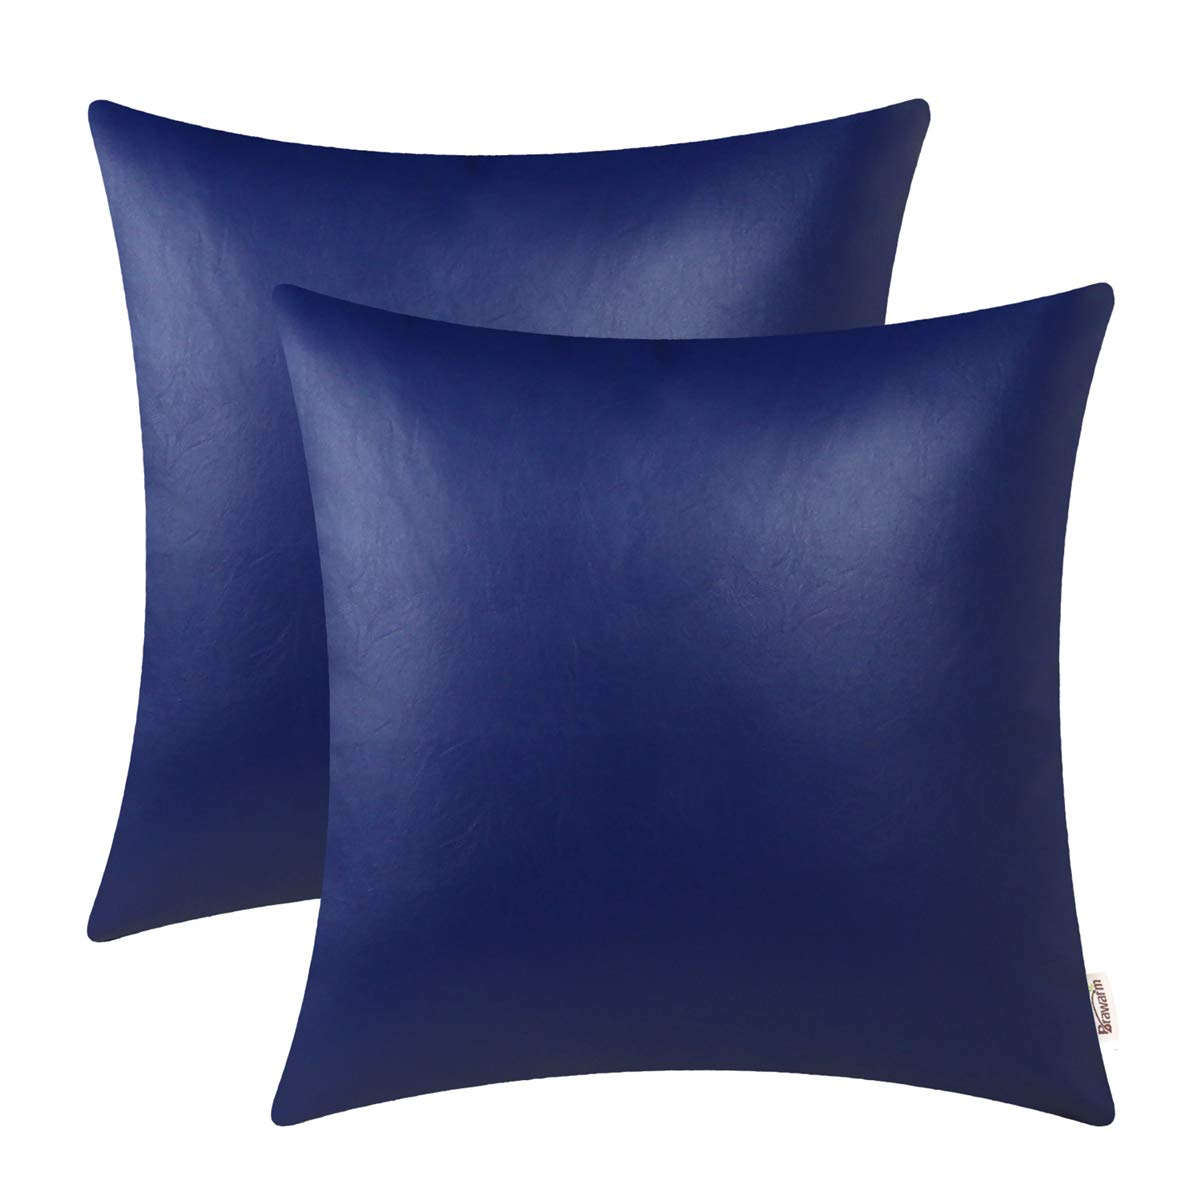 BRAWARM Pack of 2 Cozy Throw Pillow Covers Cases for Couch Sofa Home Decoration Solid Dyed Soft Faux Leather Both Sides 22 X 22 Inches Royal Blue